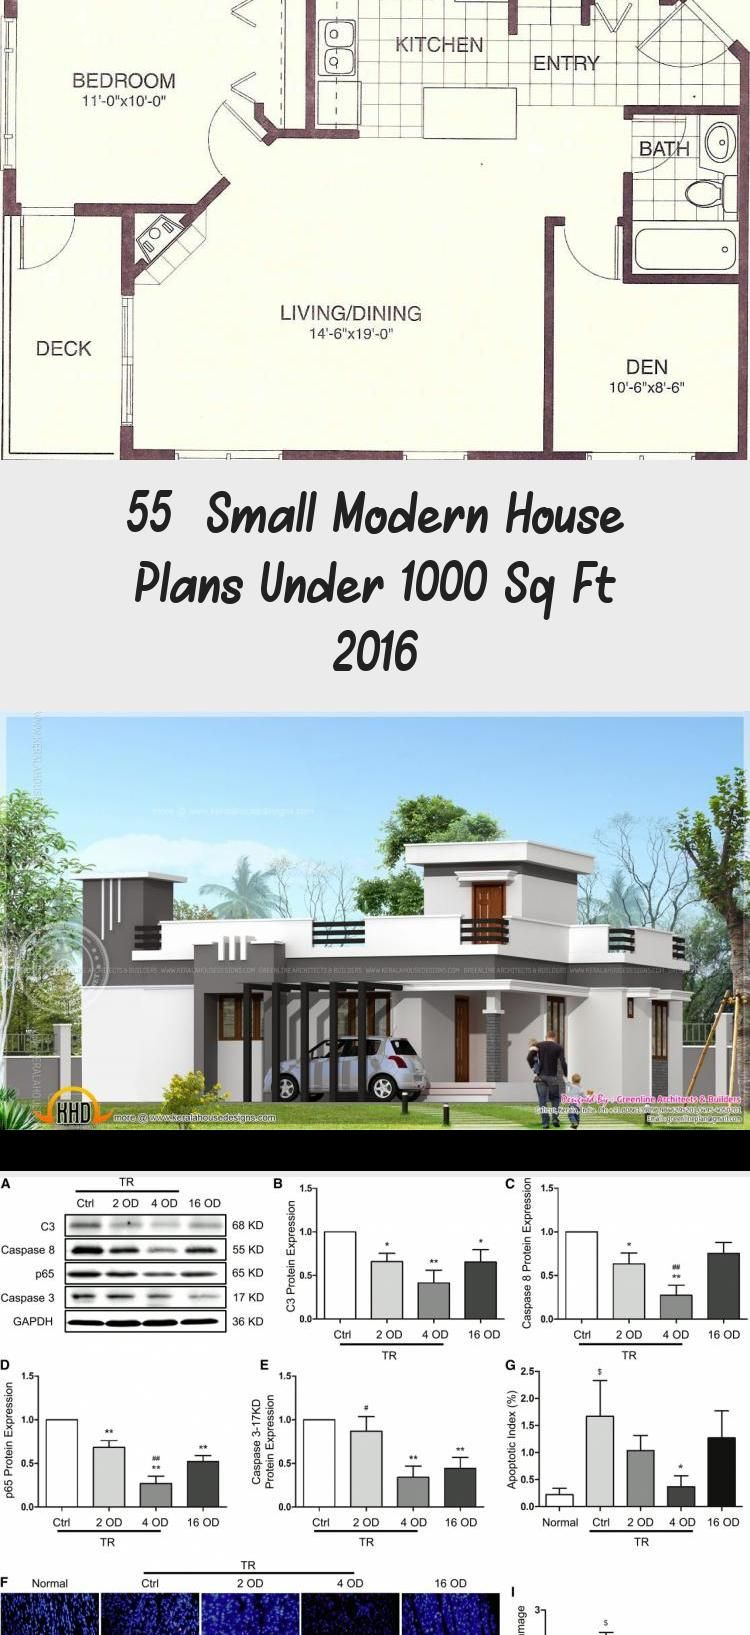 55 Small Modern House Plans Under 1000 Sq Ft 2016 Ruby S Blog In 2020 Small Modern House Plans Porch House Plans Small Modern Home